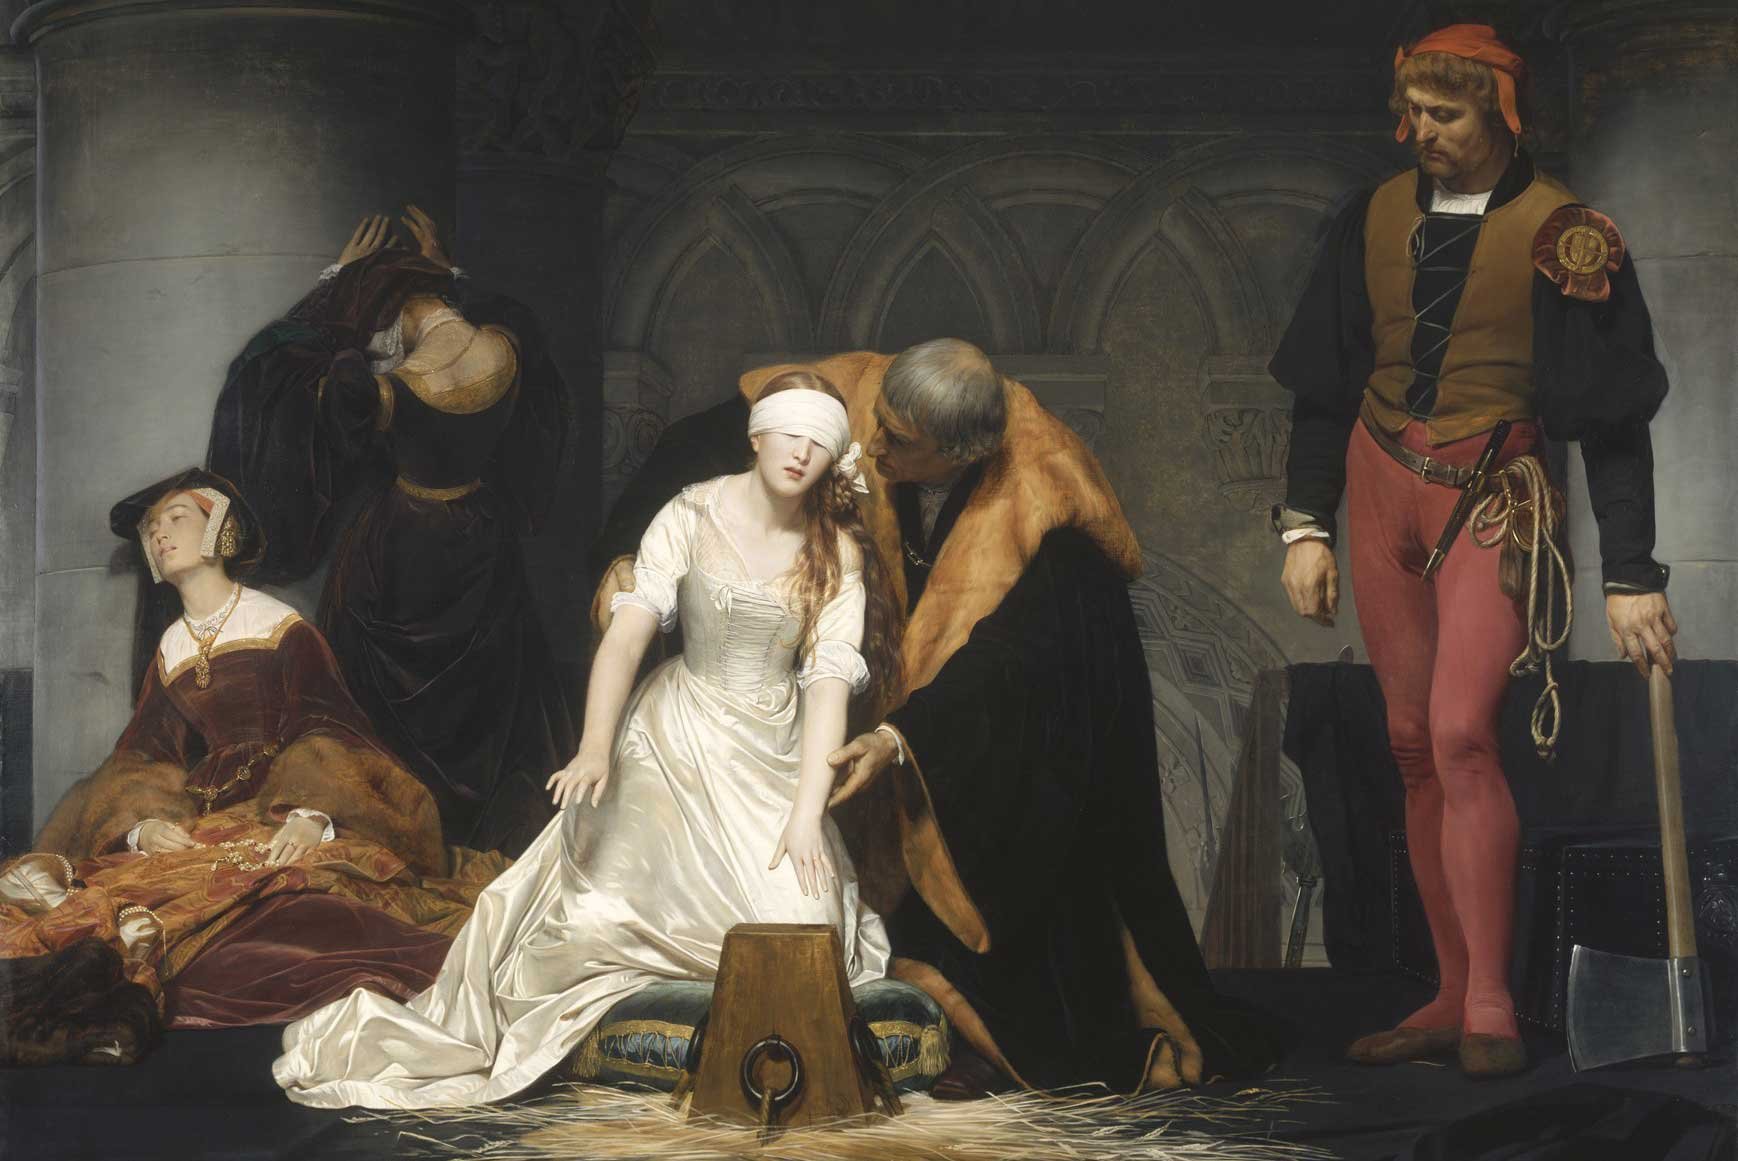 Paul Delaroche, The Execution of Lady Jane Grey 1833 © The National Gallery, London